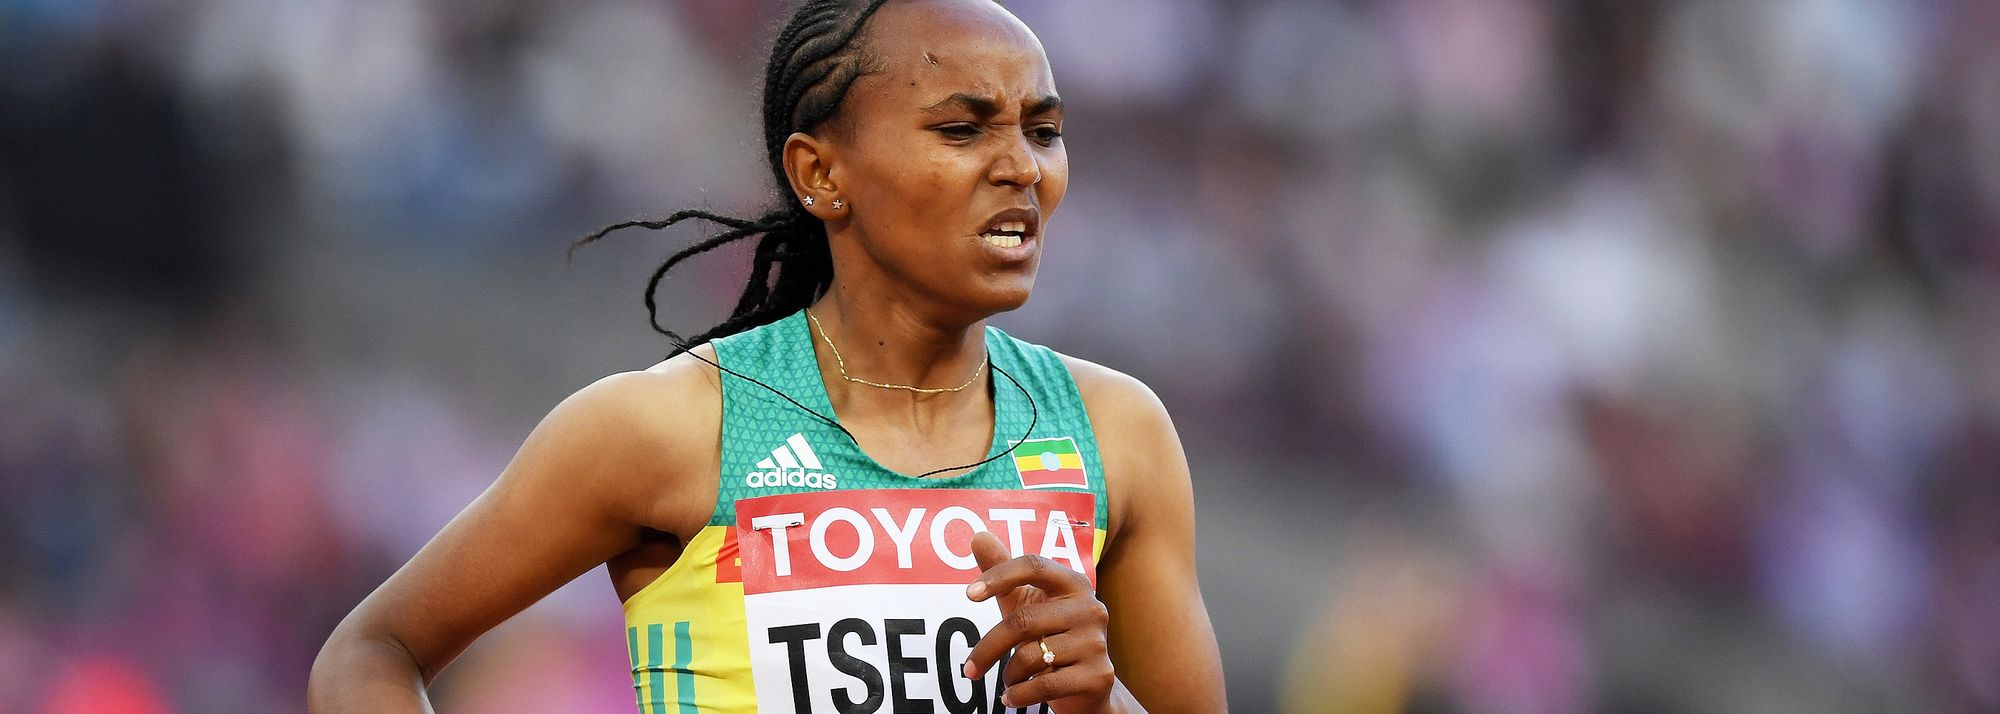 Gudaf Tsegay remembers her early days in the sport when she would look up to two-time Olympic gold medallist Meseret Defar as a role model.